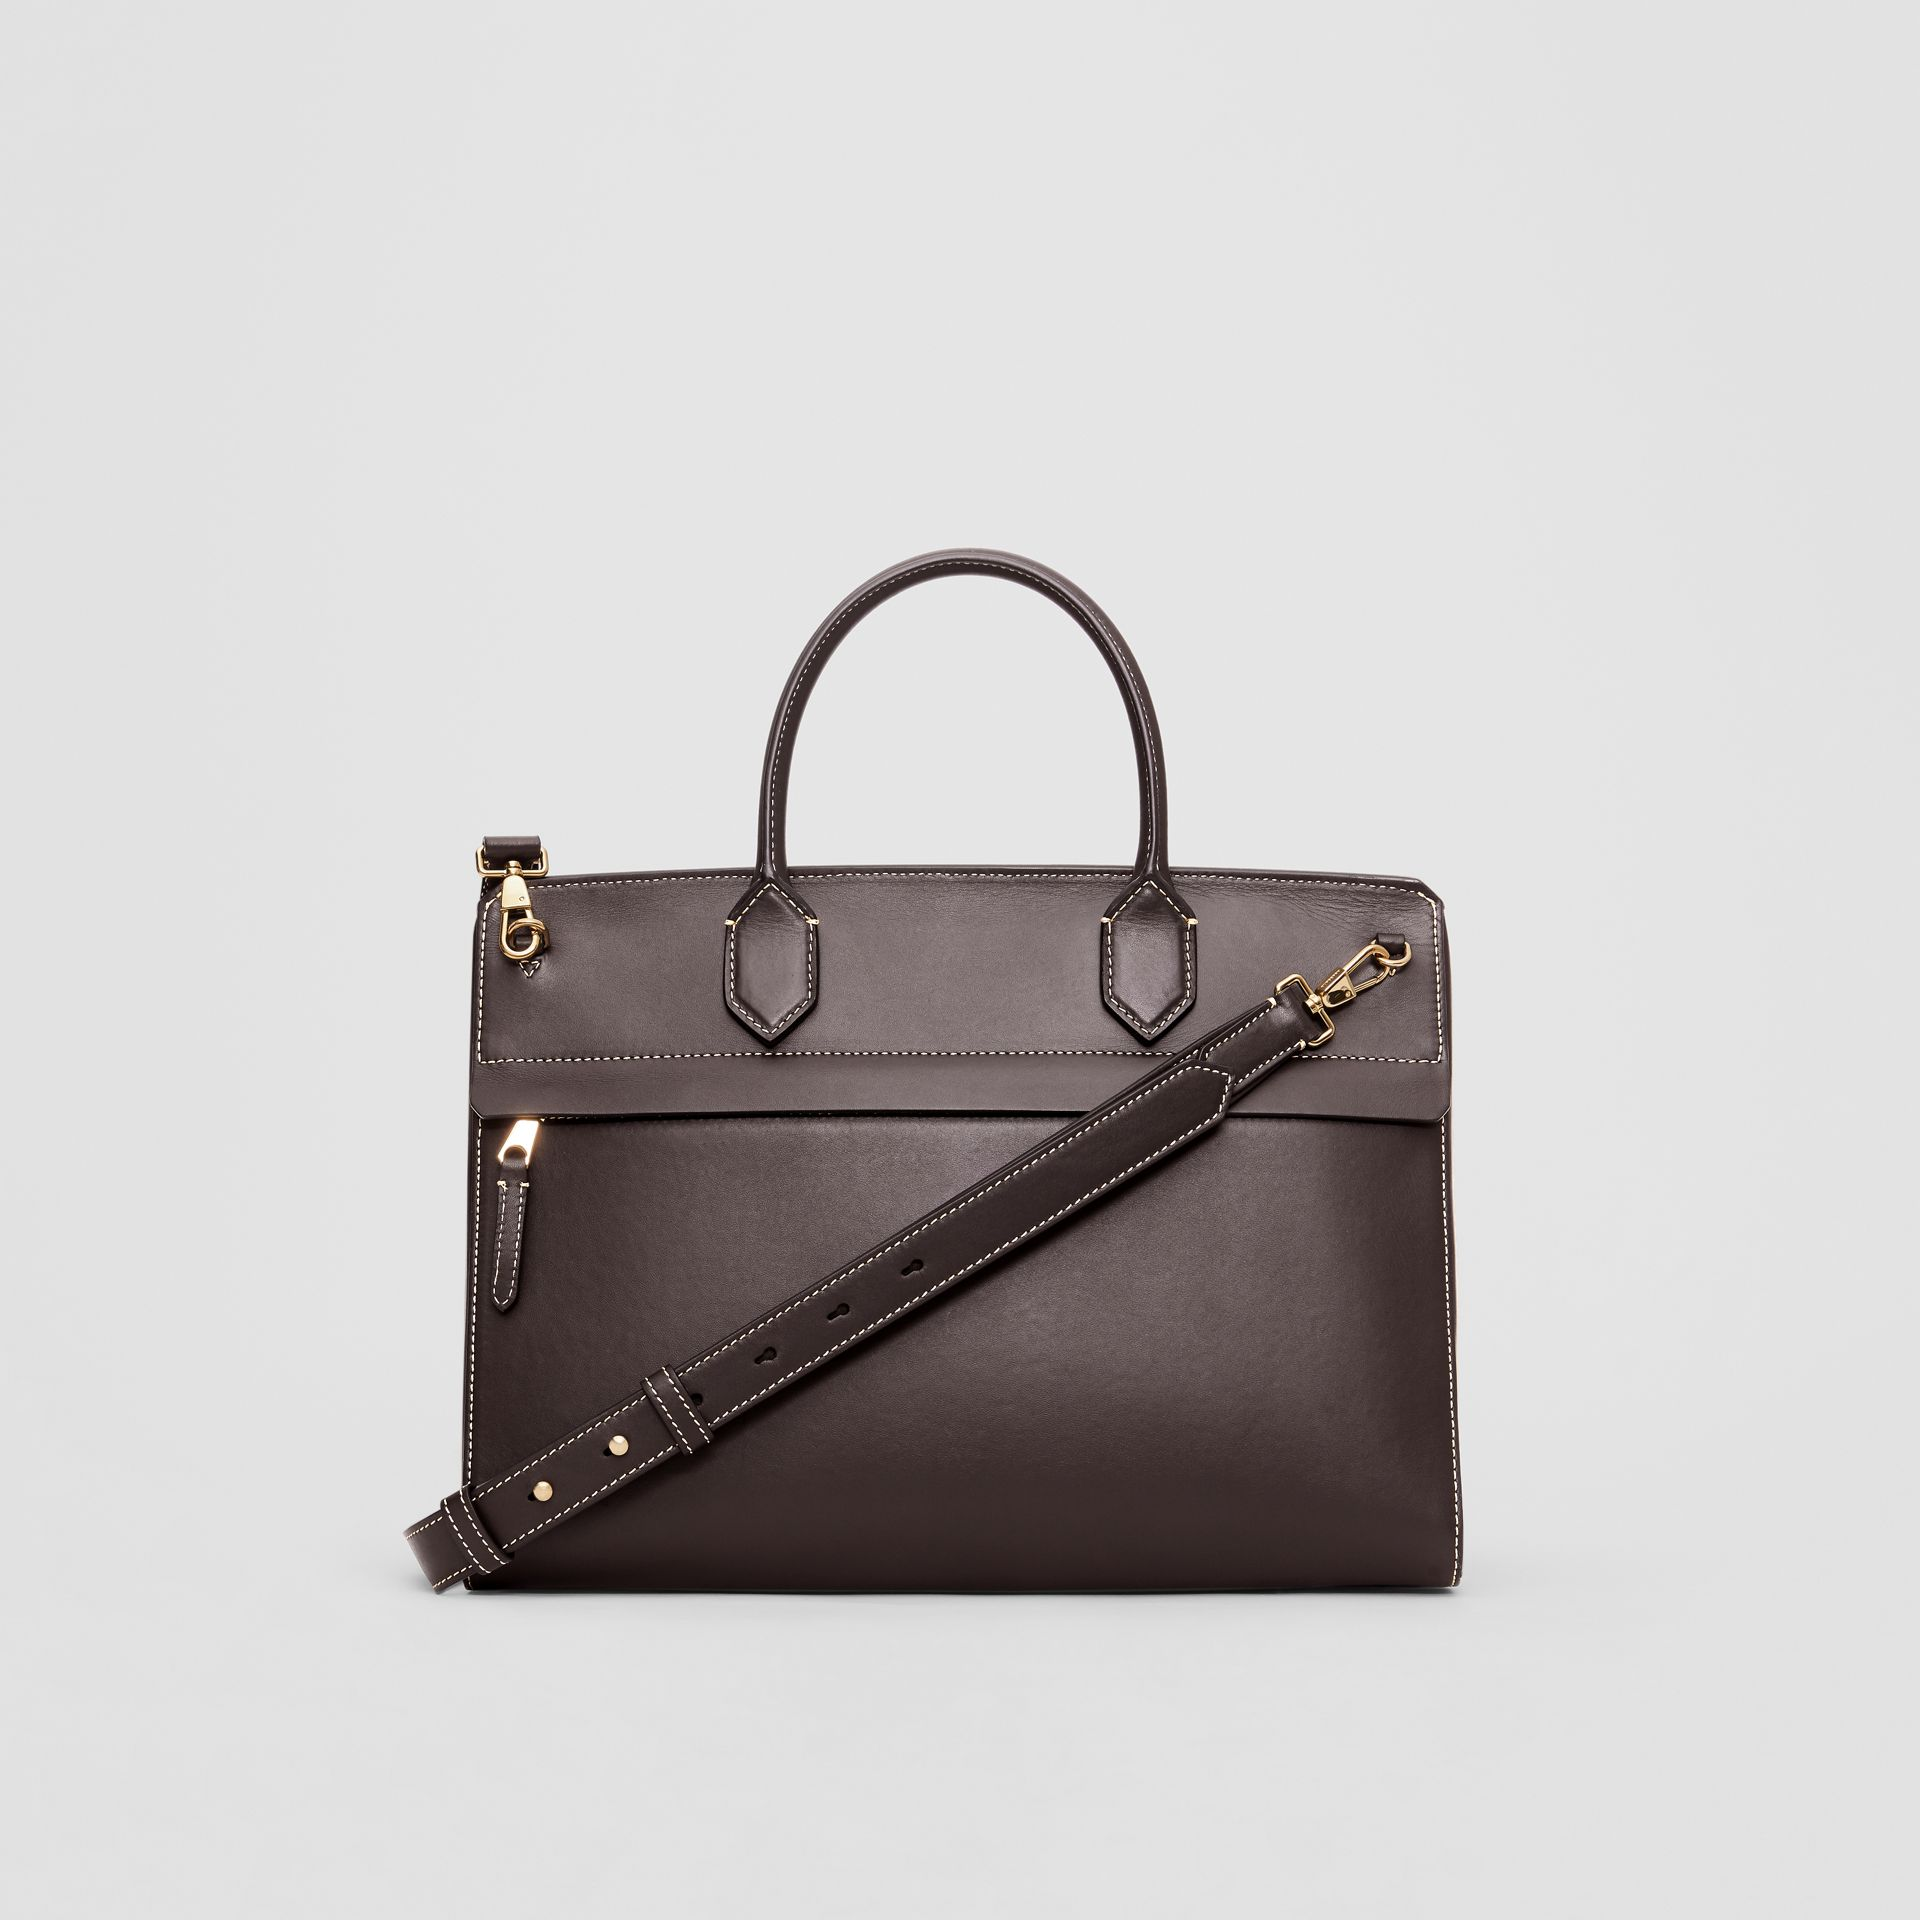 Medium Leather Elizabeth Bag in Coffee - Women | Burberry Canada - gallery image 7